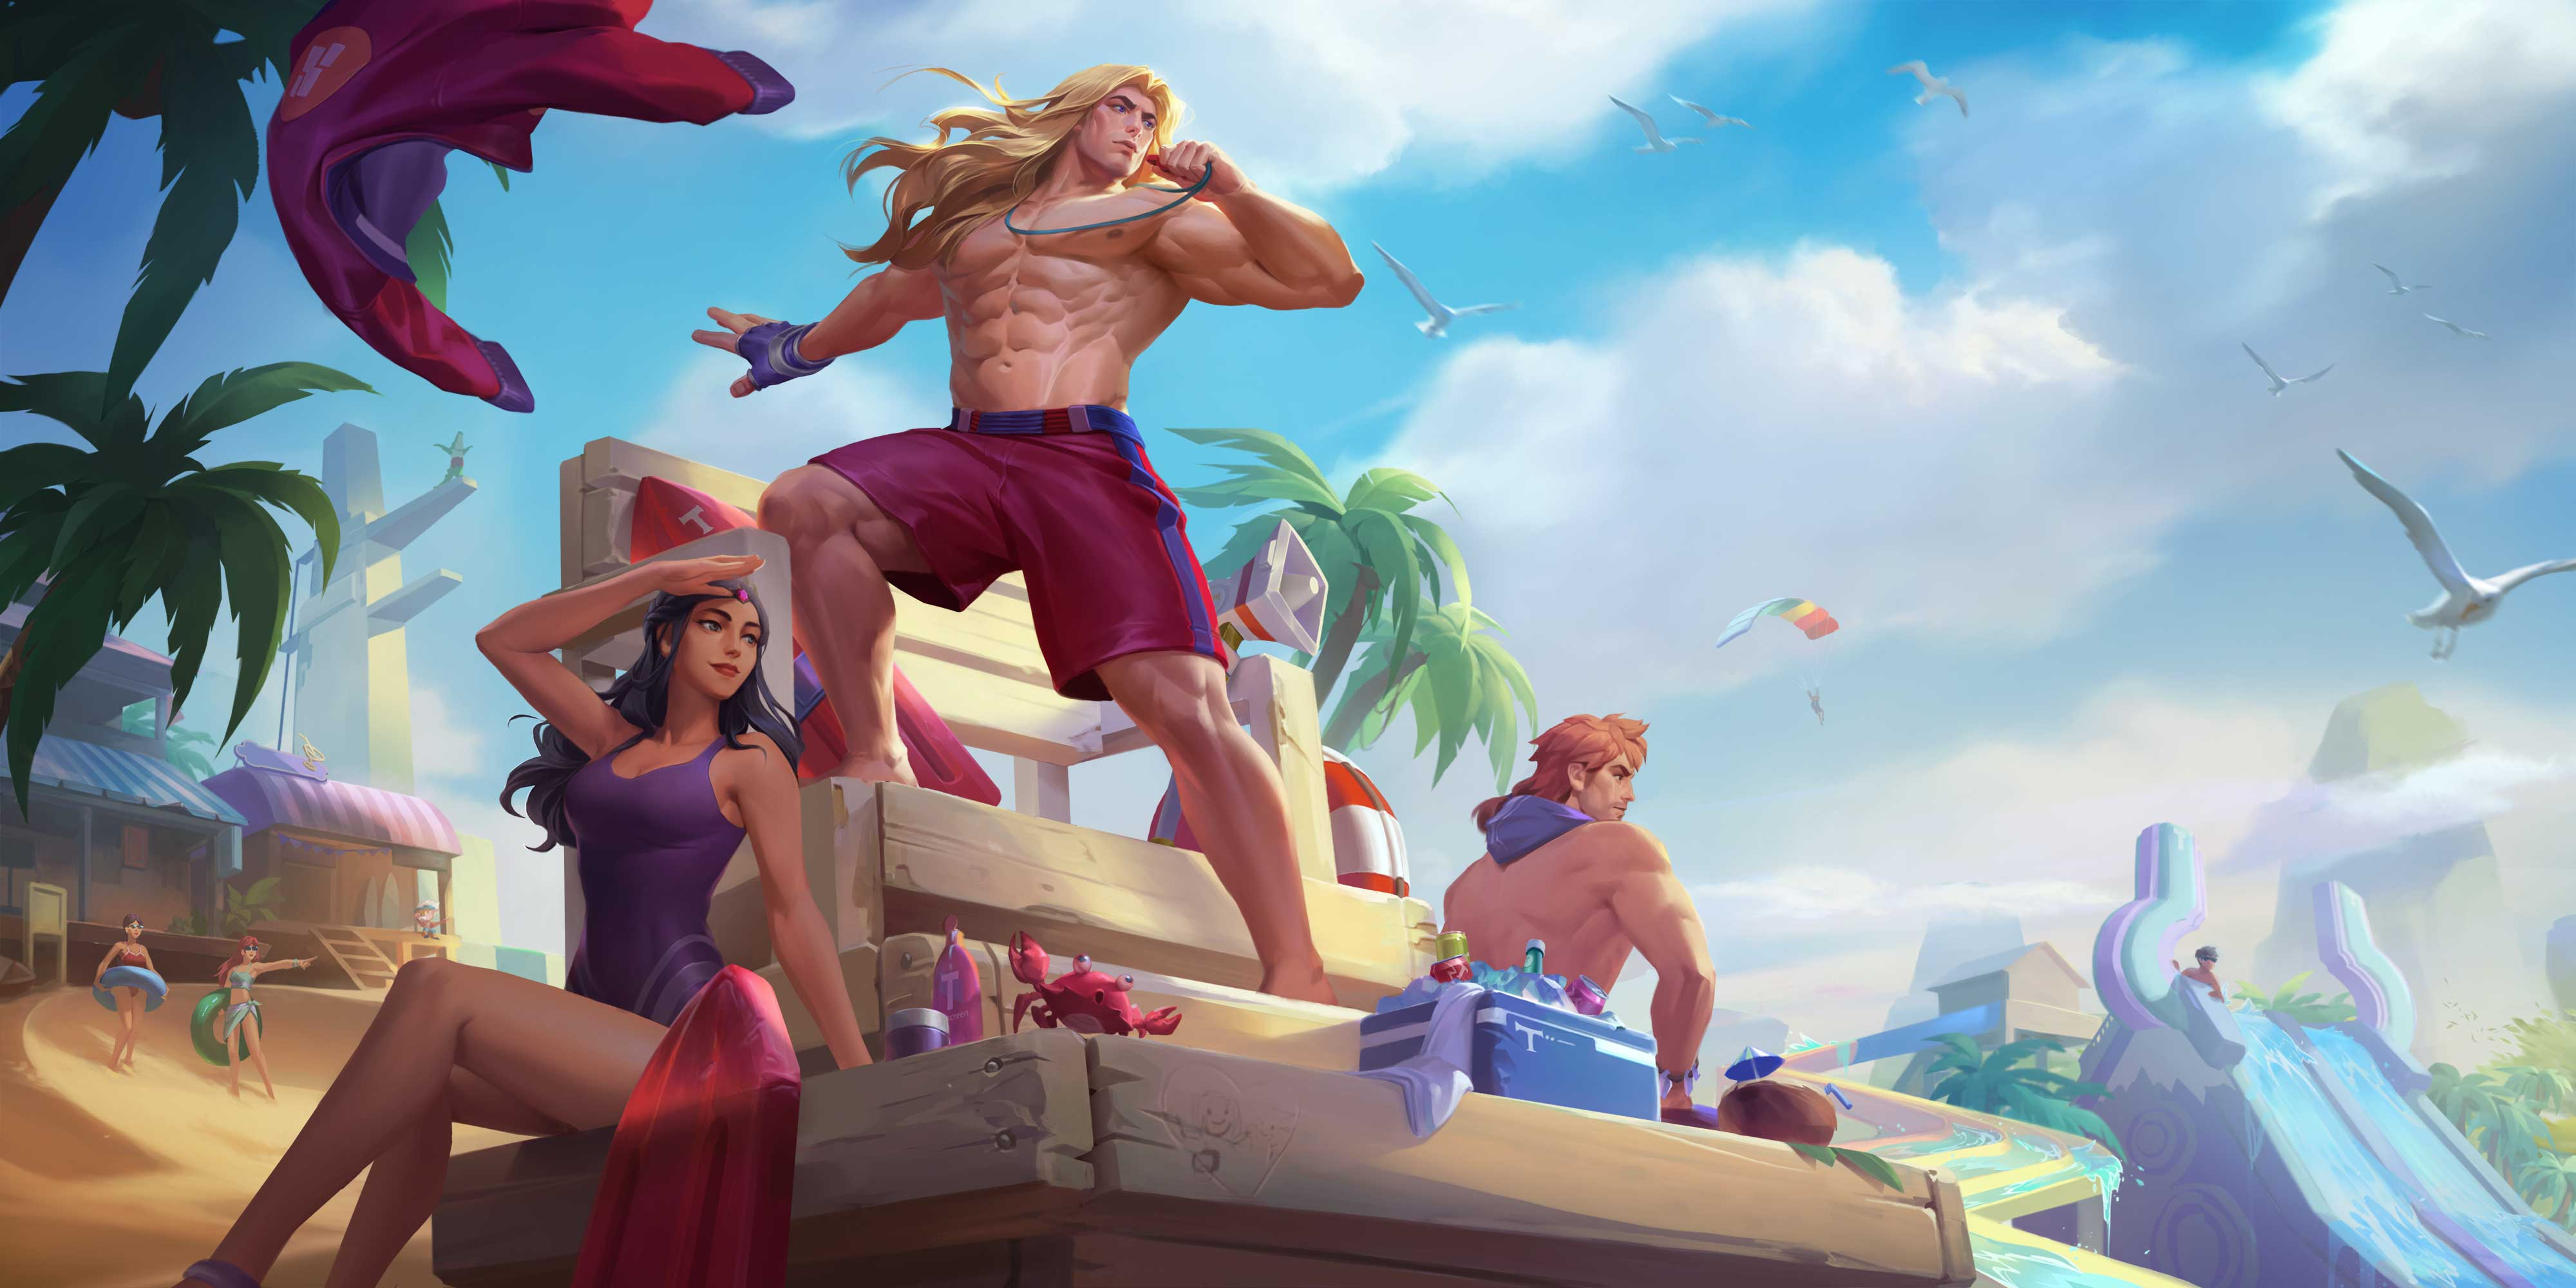 ChampSkin_Taric_PoolParty_Level_01_CENS.jpg